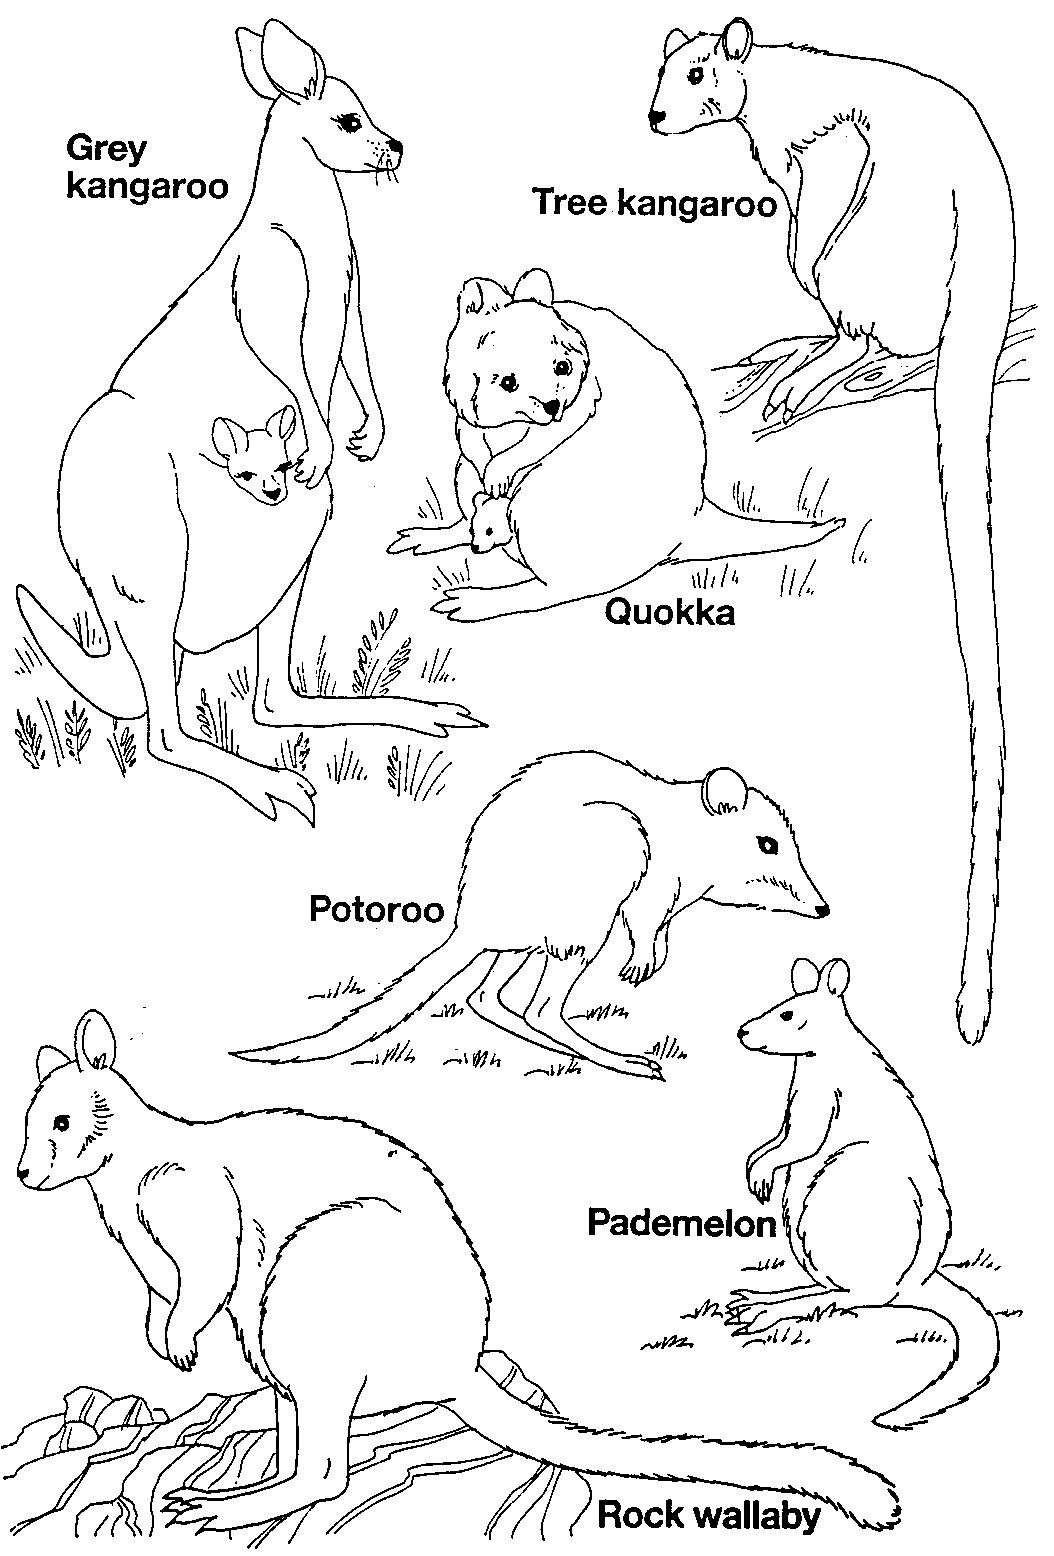 Pinruth Metka On Australia Unit | Australia For Kids, Australia - Free Printable Pictures Of Australian Animals